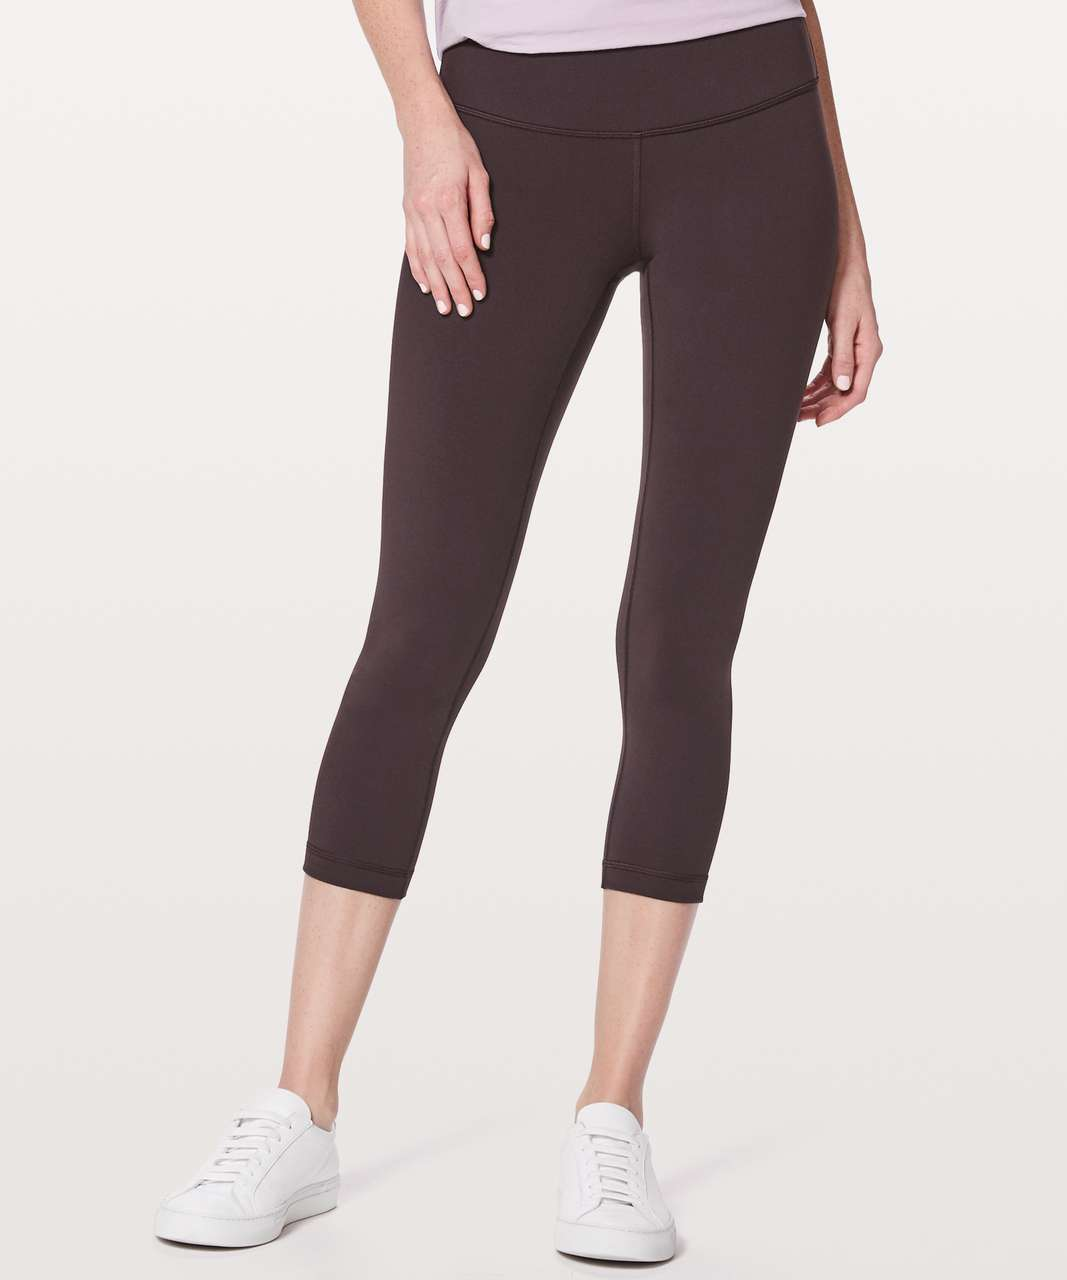 f2912d37f1 Lululemon Wunder Under Crop III *Full-On Luon 21